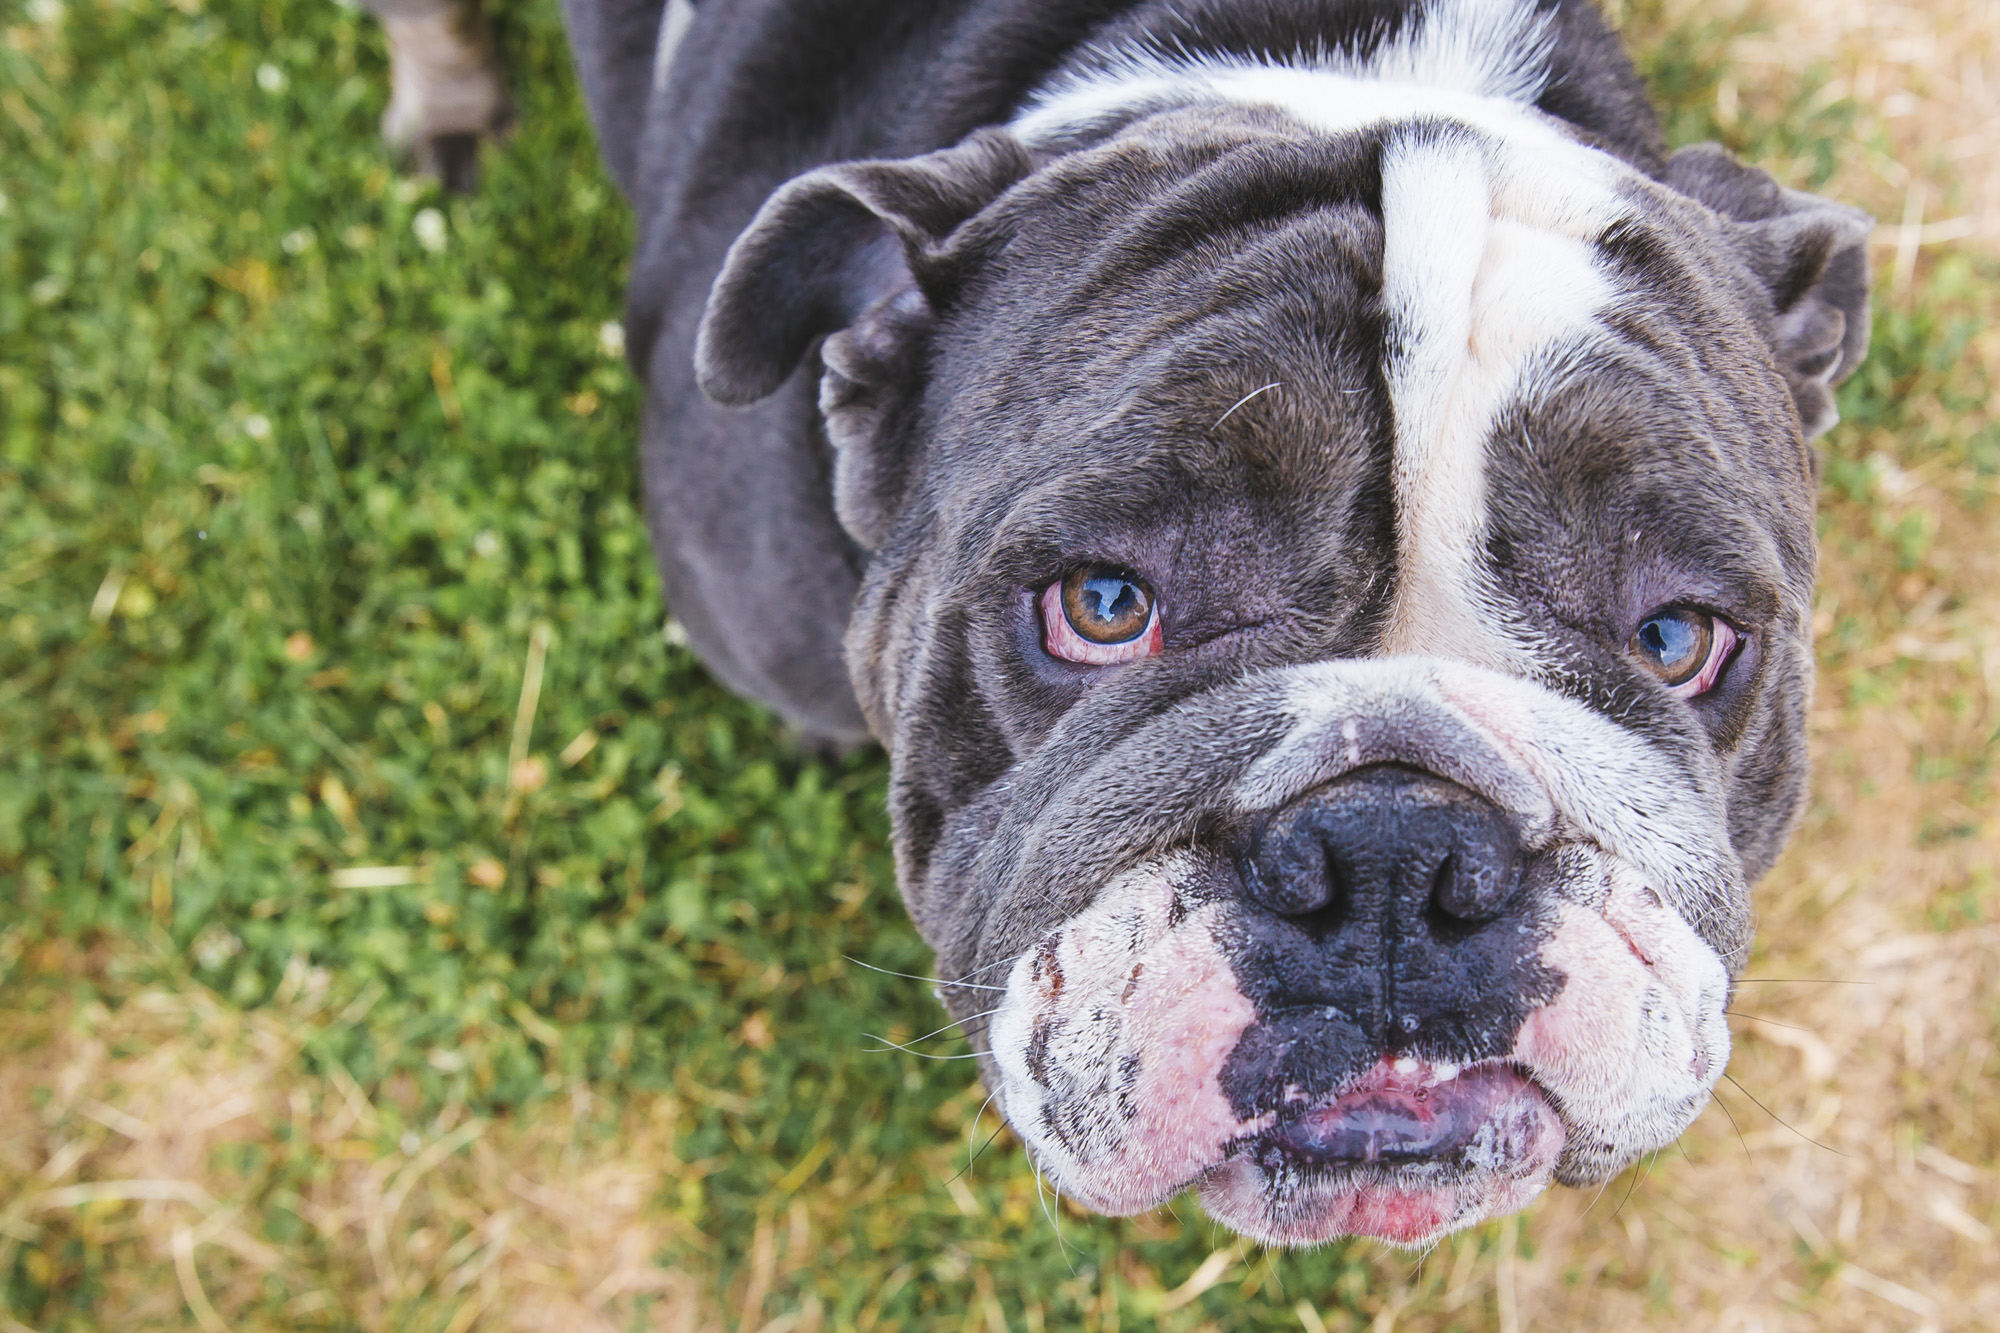 Look at this floofy NUGGET! Meet Wilbur, a nearly two year old English Bulldog. Wilbur lives in Bellevue with his other bully brother and sister, Maverick and Pearl who are all spoiled rotten. This bubba like going on walks, chewing on Nyla bones and playing with a water hose. He enjoys dog parks and will even go for a quick swim every now and then. He loves treats and vanilla ice cream. He dislikes vacuums, baths and the blow dryer. He attacks the dryer which makes it impossible to use.{ }The Seattle RUFFined Spotlight is a weekly profile of local pets living and loving life in the PNW. If you or someone you know has a pet you'd like featured, email us at hello@seattlerefined.com or tag #SeattleRUFFined and your furbaby could be the next spotlighted! (Image: Sunita Martini / Seattle Refined).